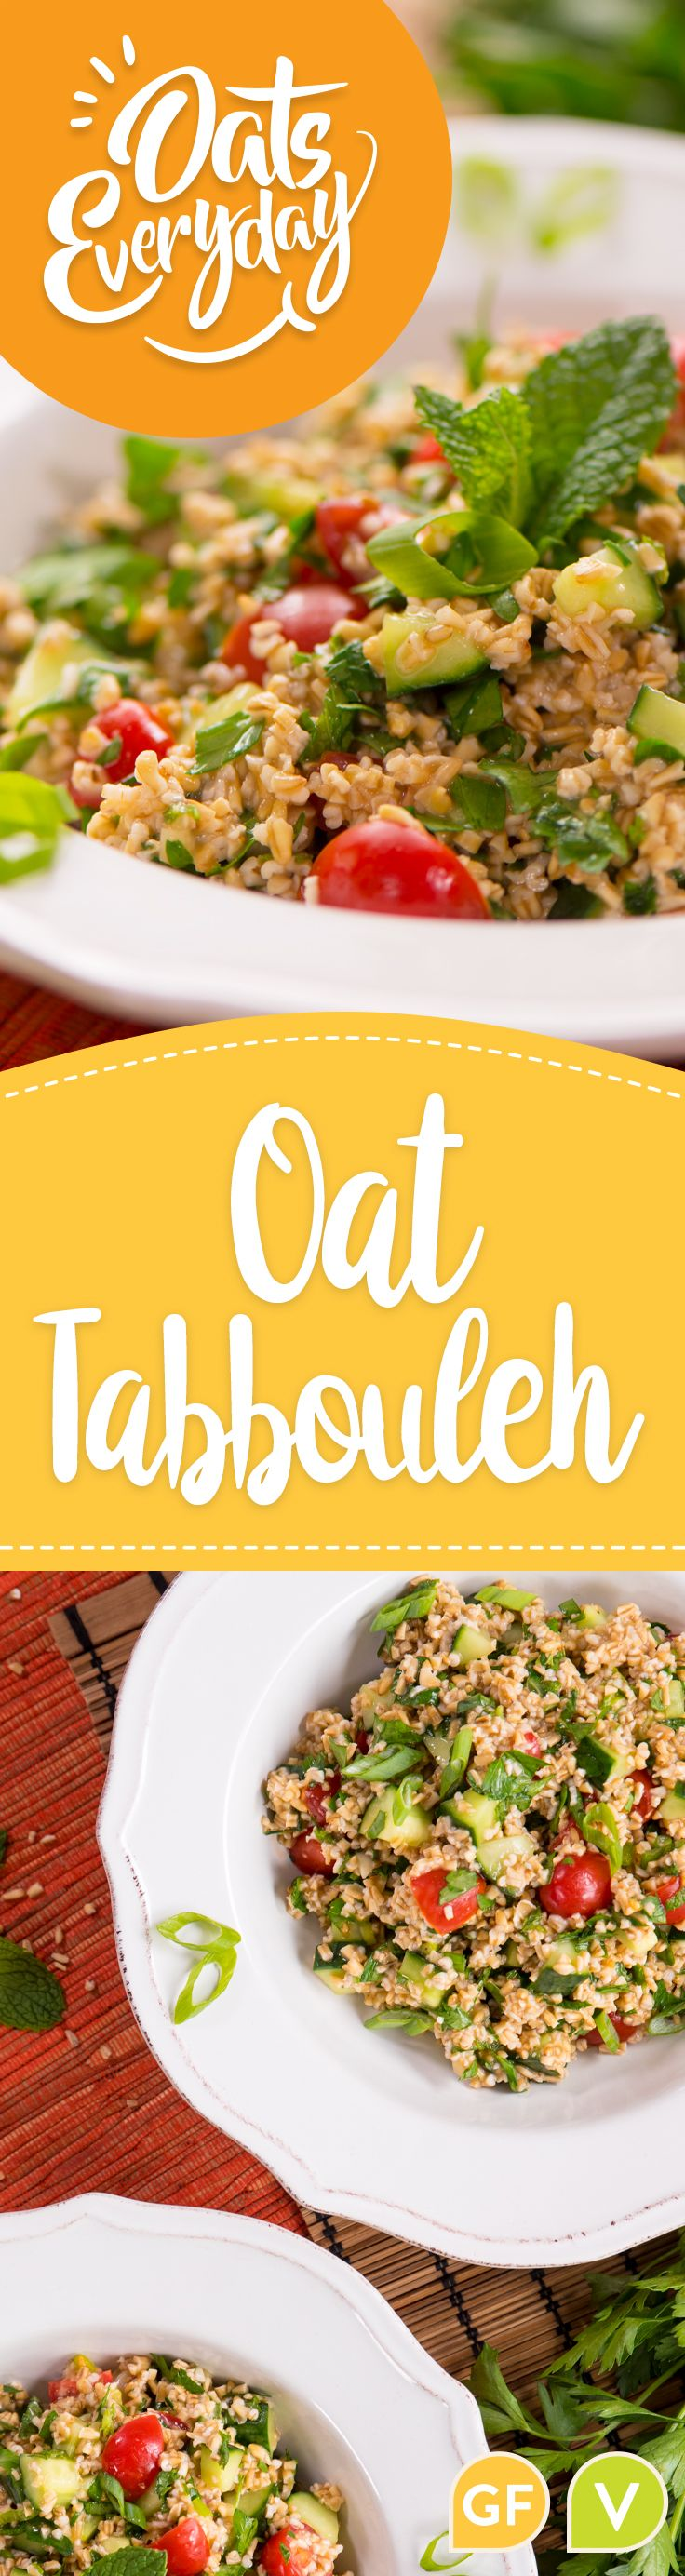 A gluten-free variation on tabbouleh salad using toasted steel cut oats.